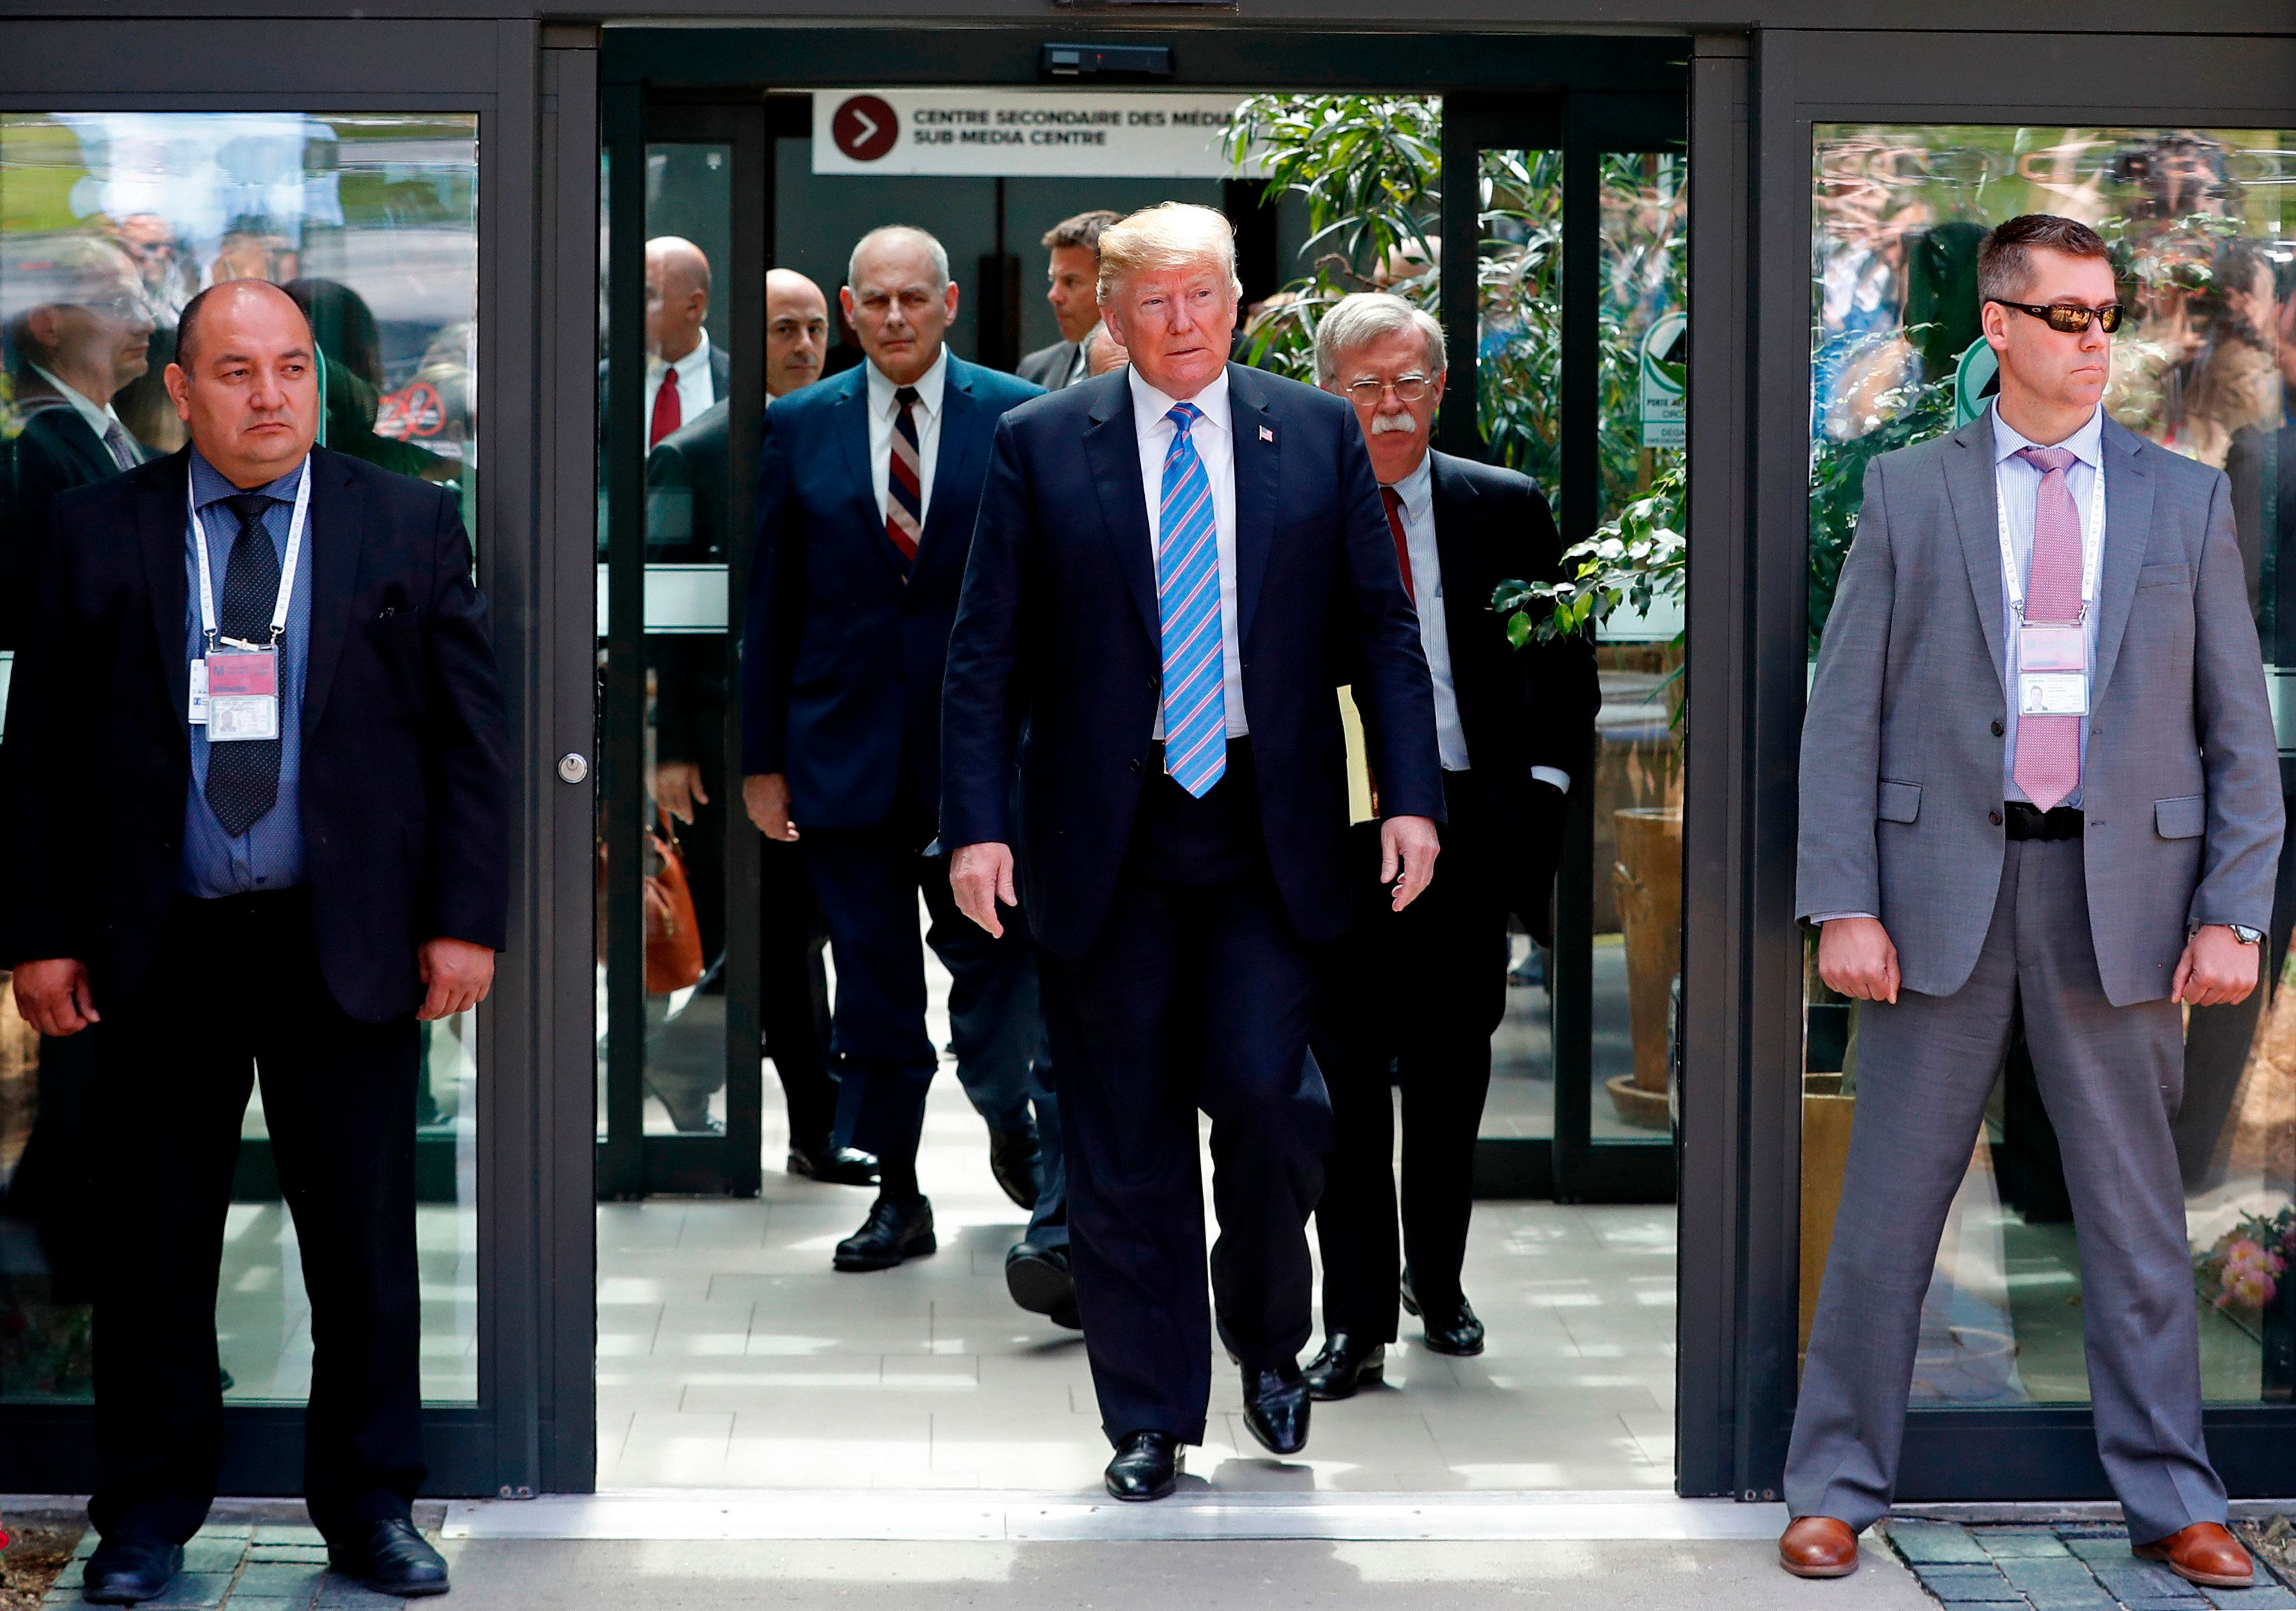 Donald Trump left the G7 summit in Quebec, Canada early on Saturday ahead of his meeting with North Korean...